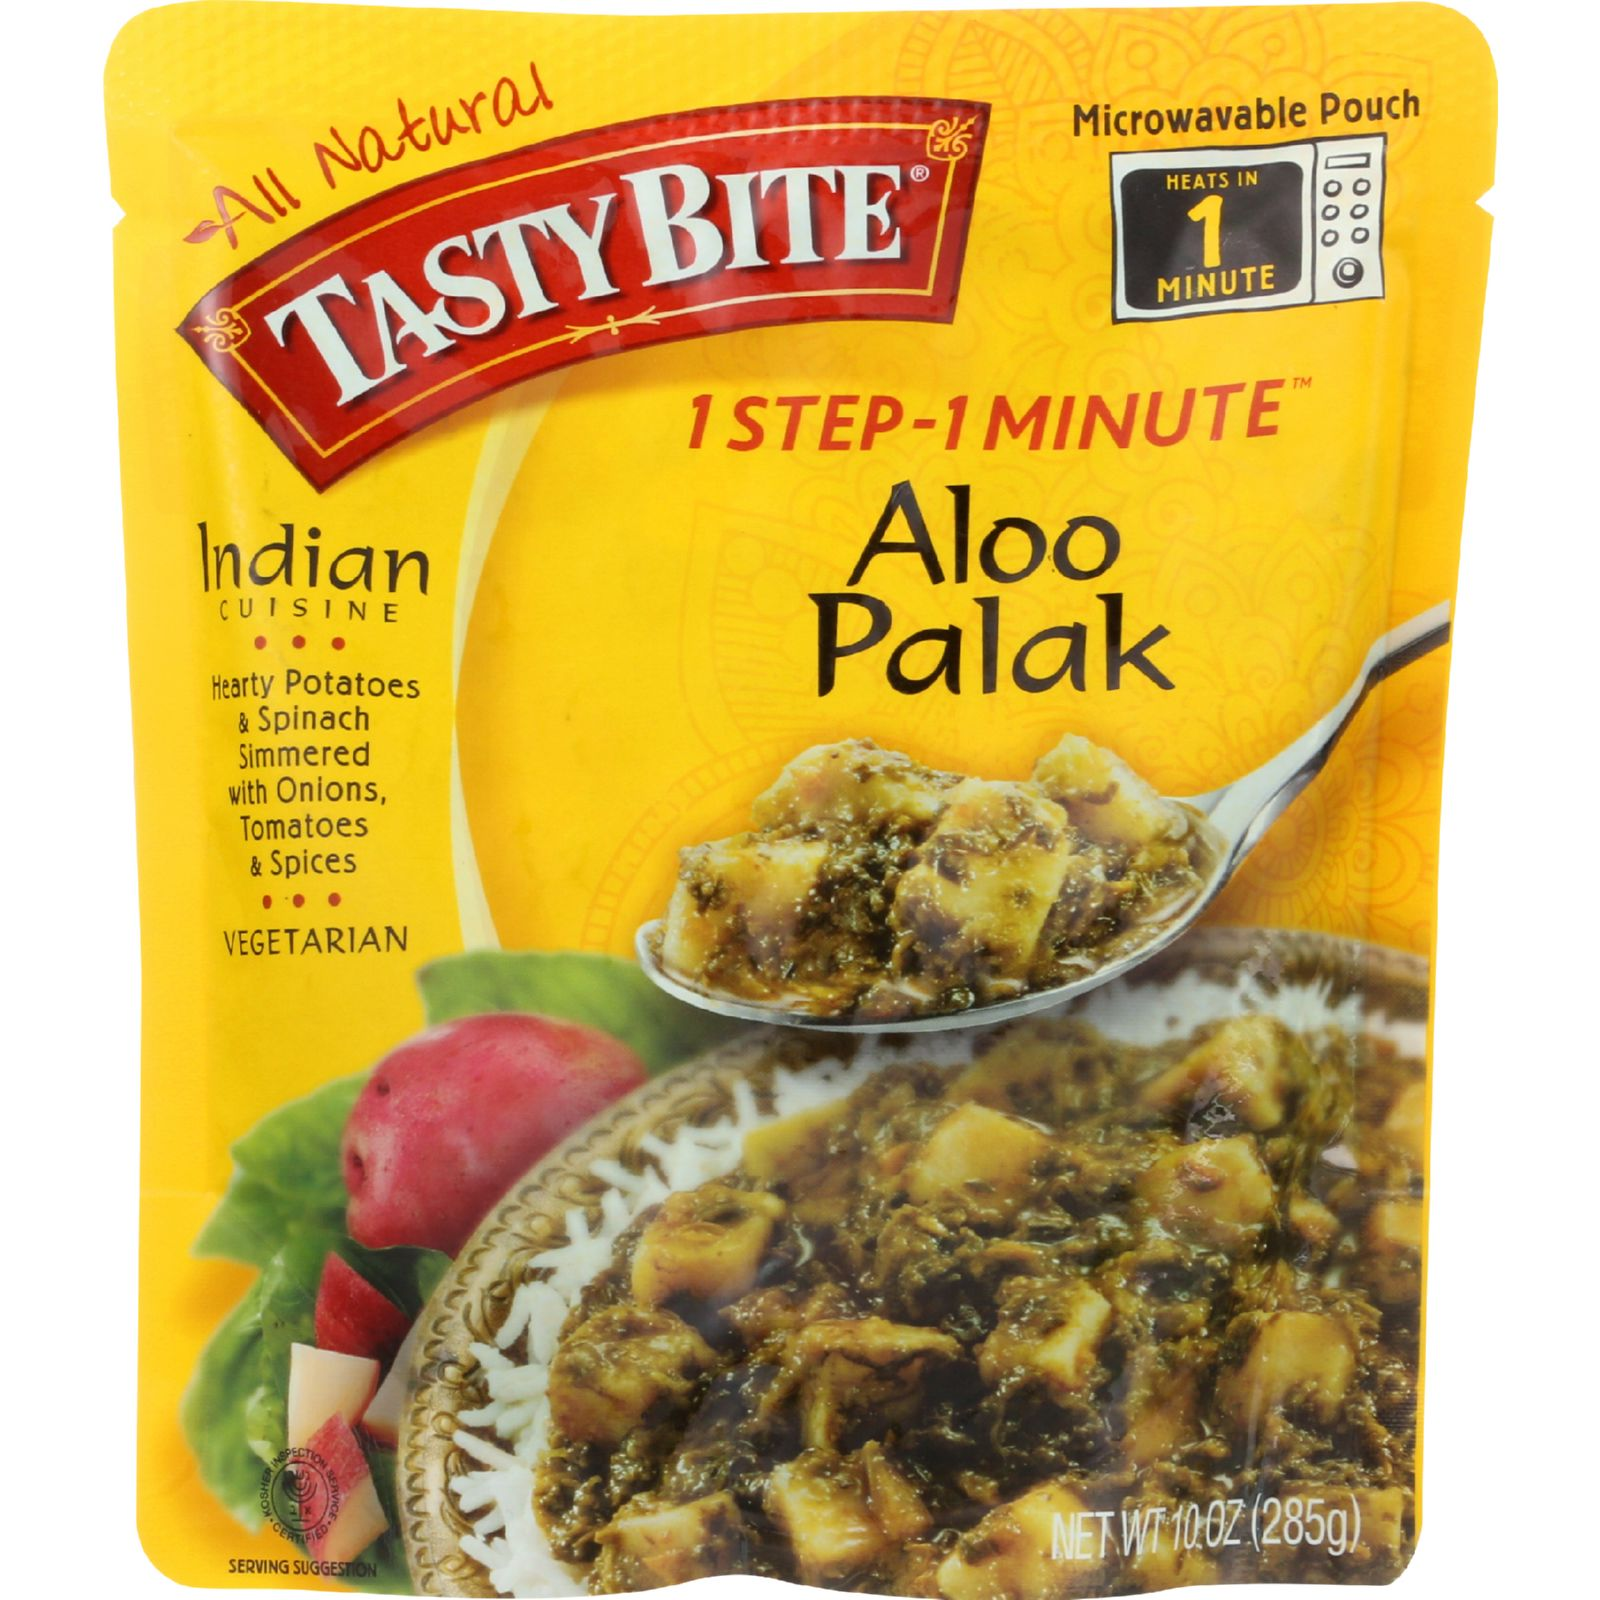 Tasty Bite Entree - Indian Cuisine - Aloo Palak - 10 Oz - Case Of 6